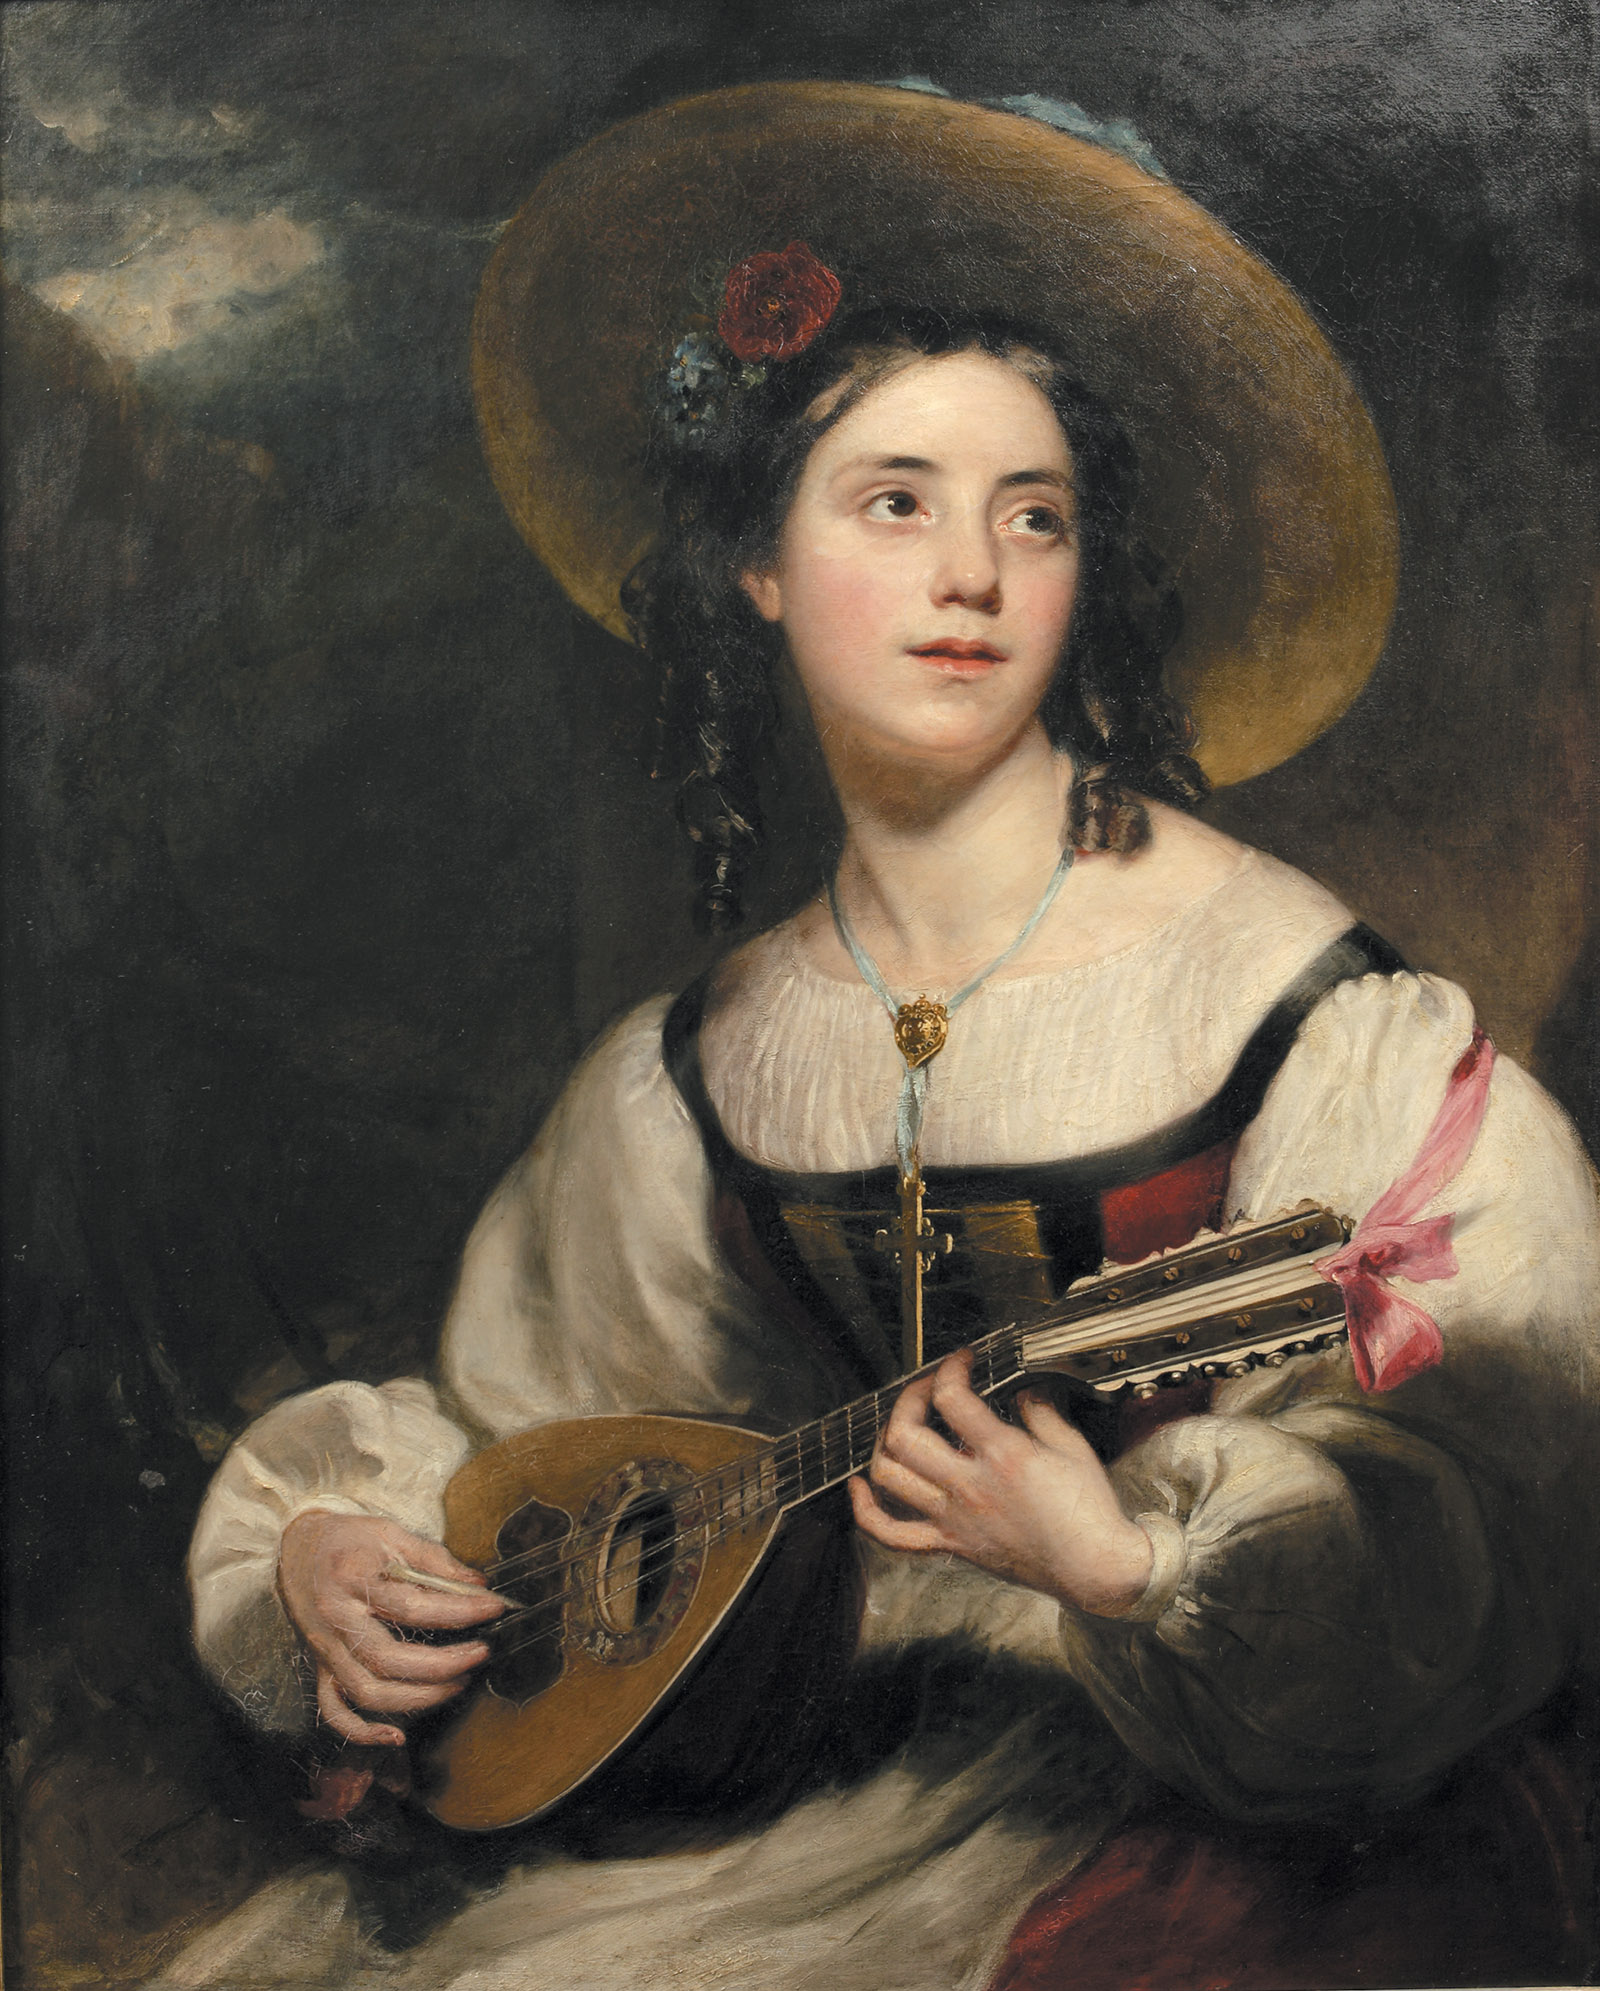 Henry William Pickersgill: The Minstrel of Chamouni, 1828. In L.E.L., Lucasta Miller writes that this painting 'represented...an attempt to desexualize' Letitia Elizabeth Landon 'while keeping her in the fancy-dress realm of romance.'